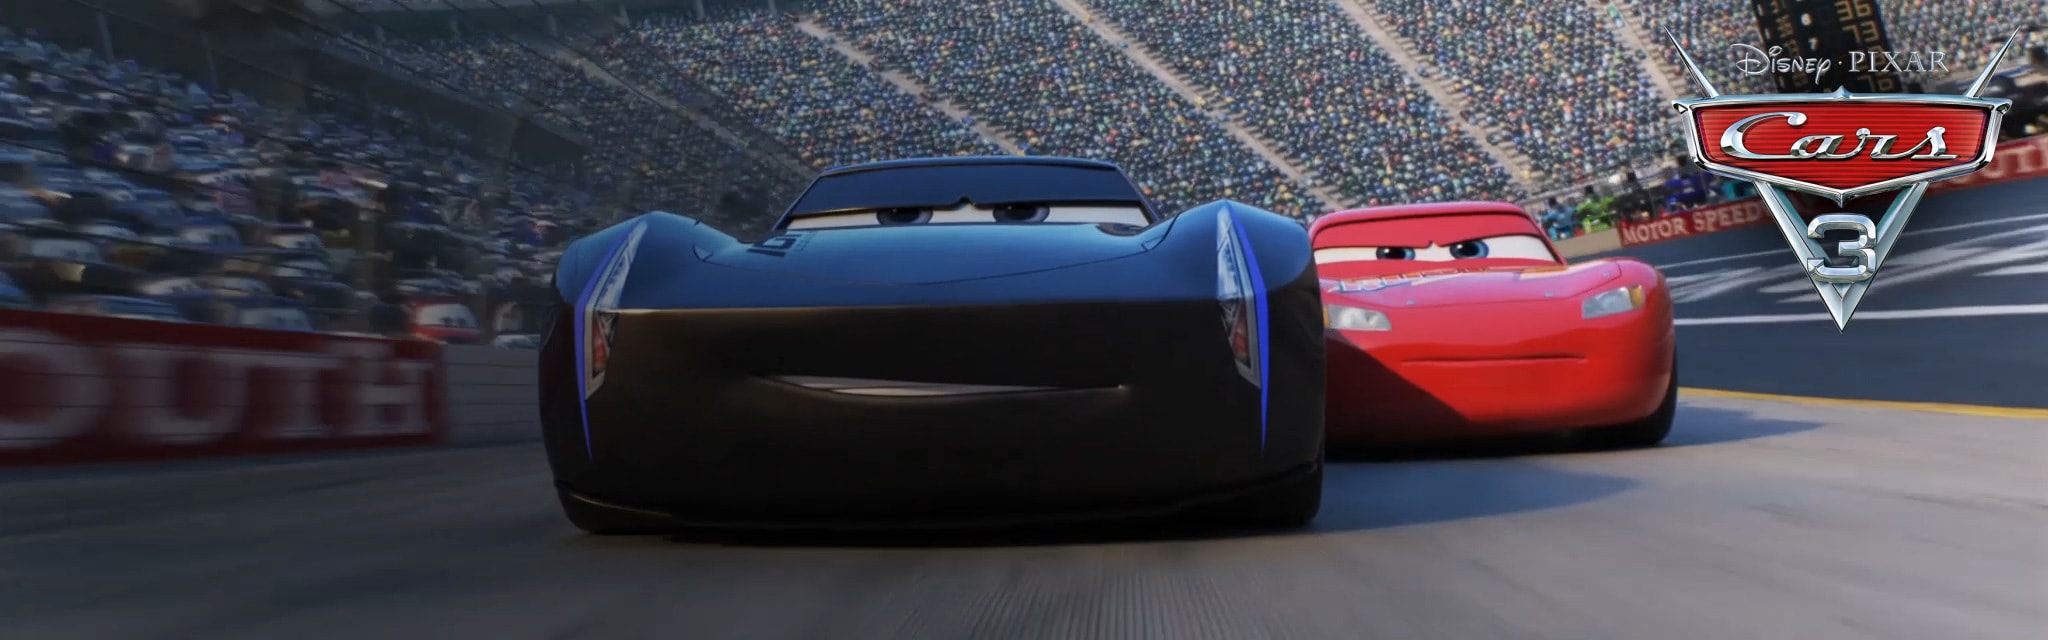 Cars 3 Rivalry Animated Hero